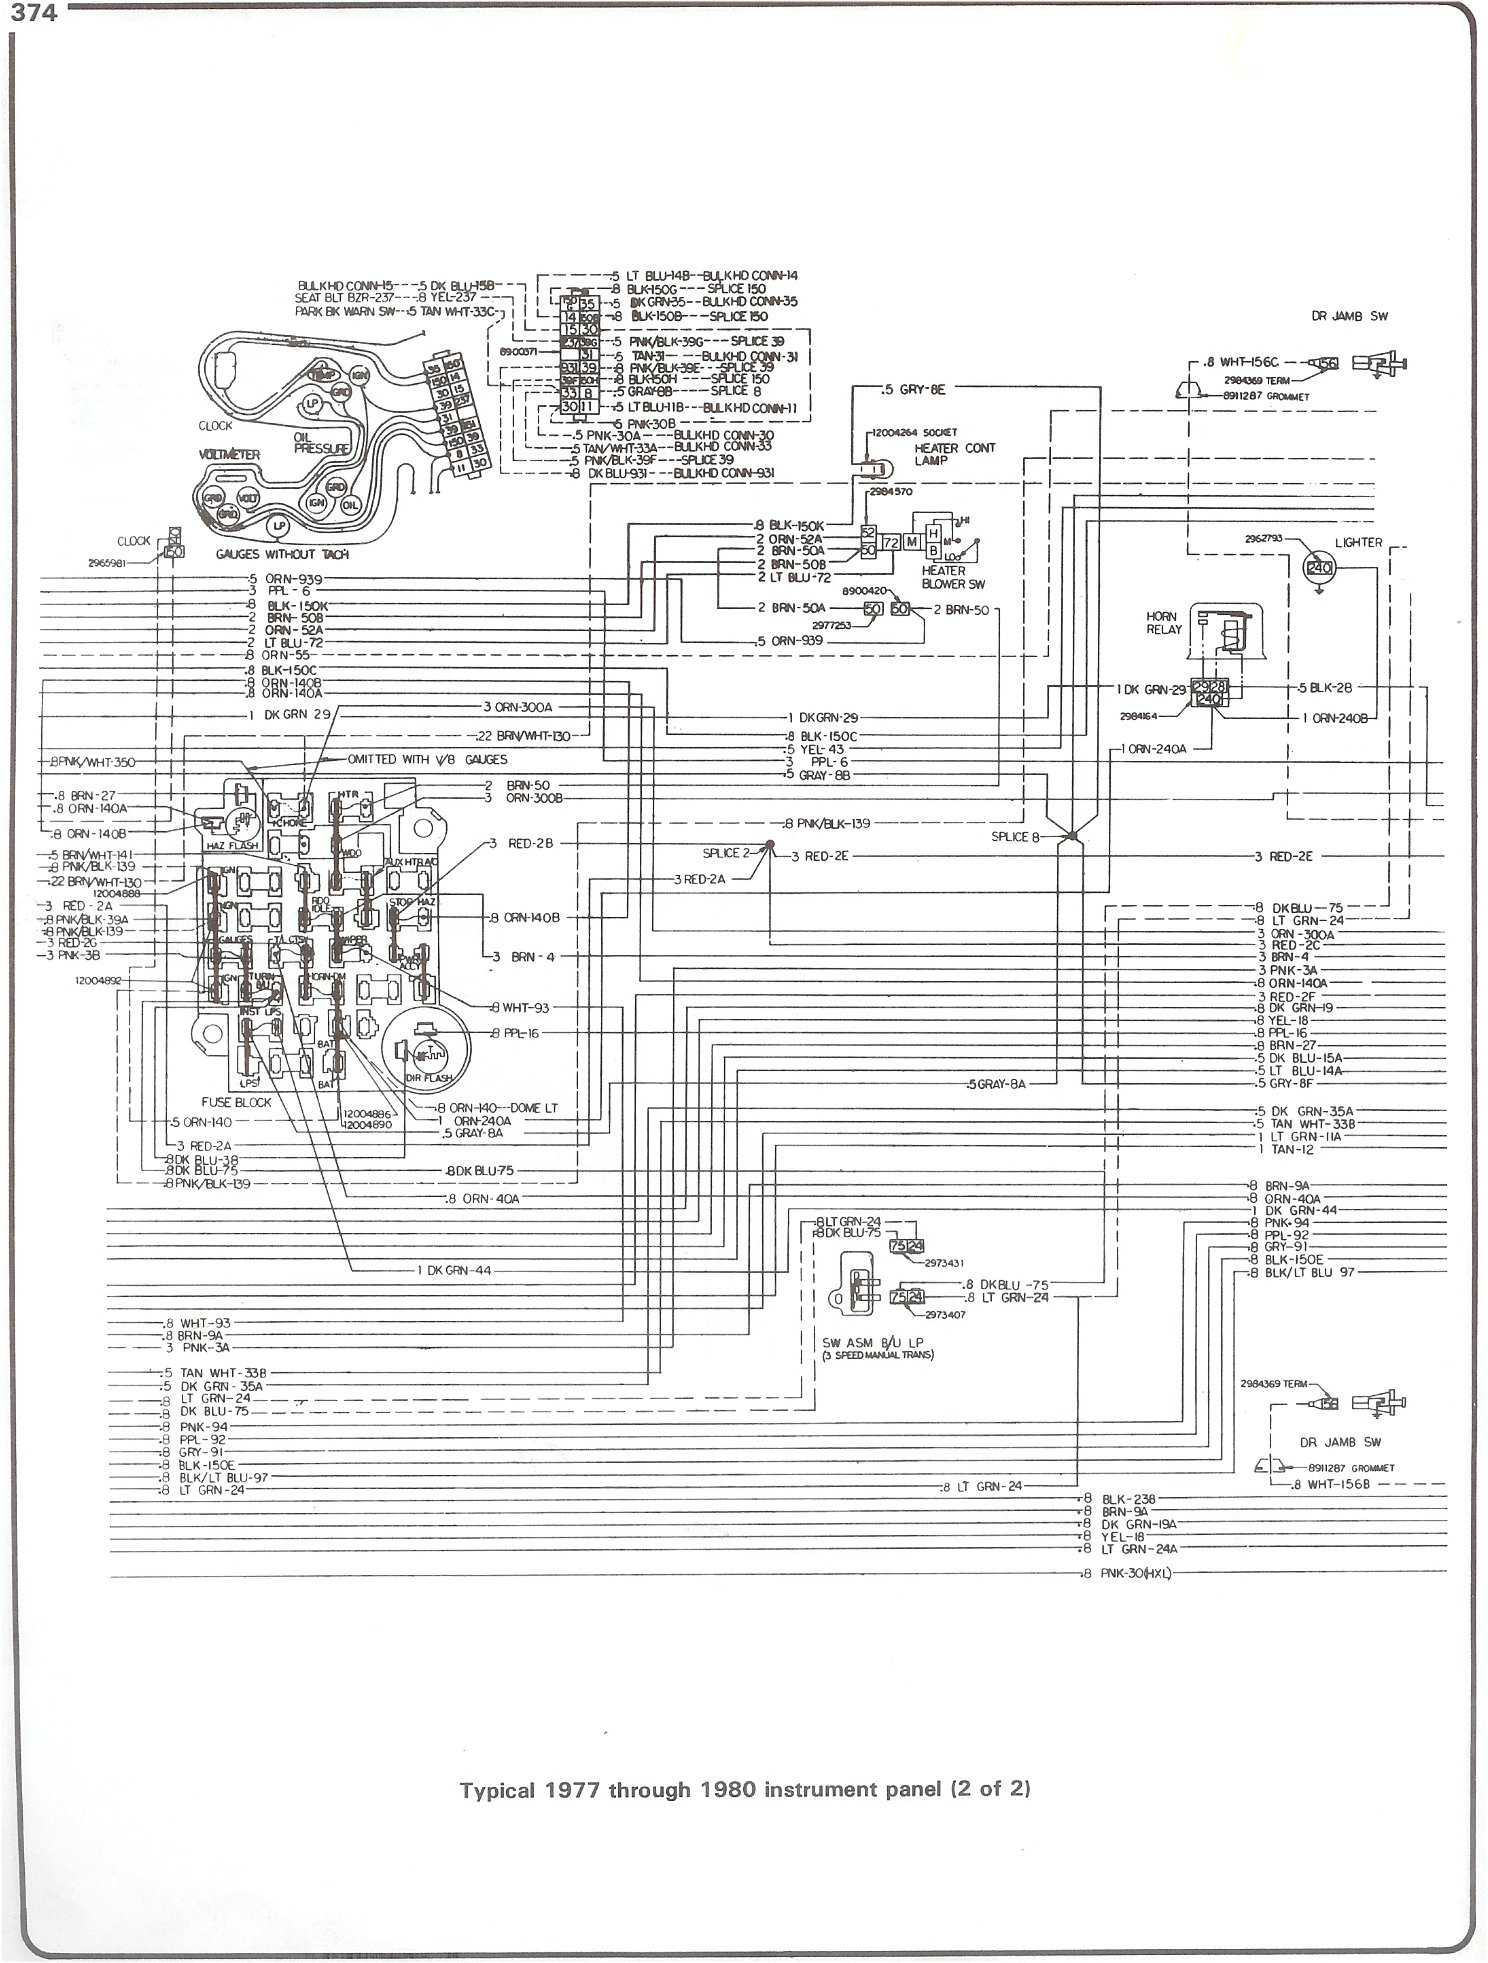 1991 Chevy Truck Wiring Diagram | Wiring Diagram on